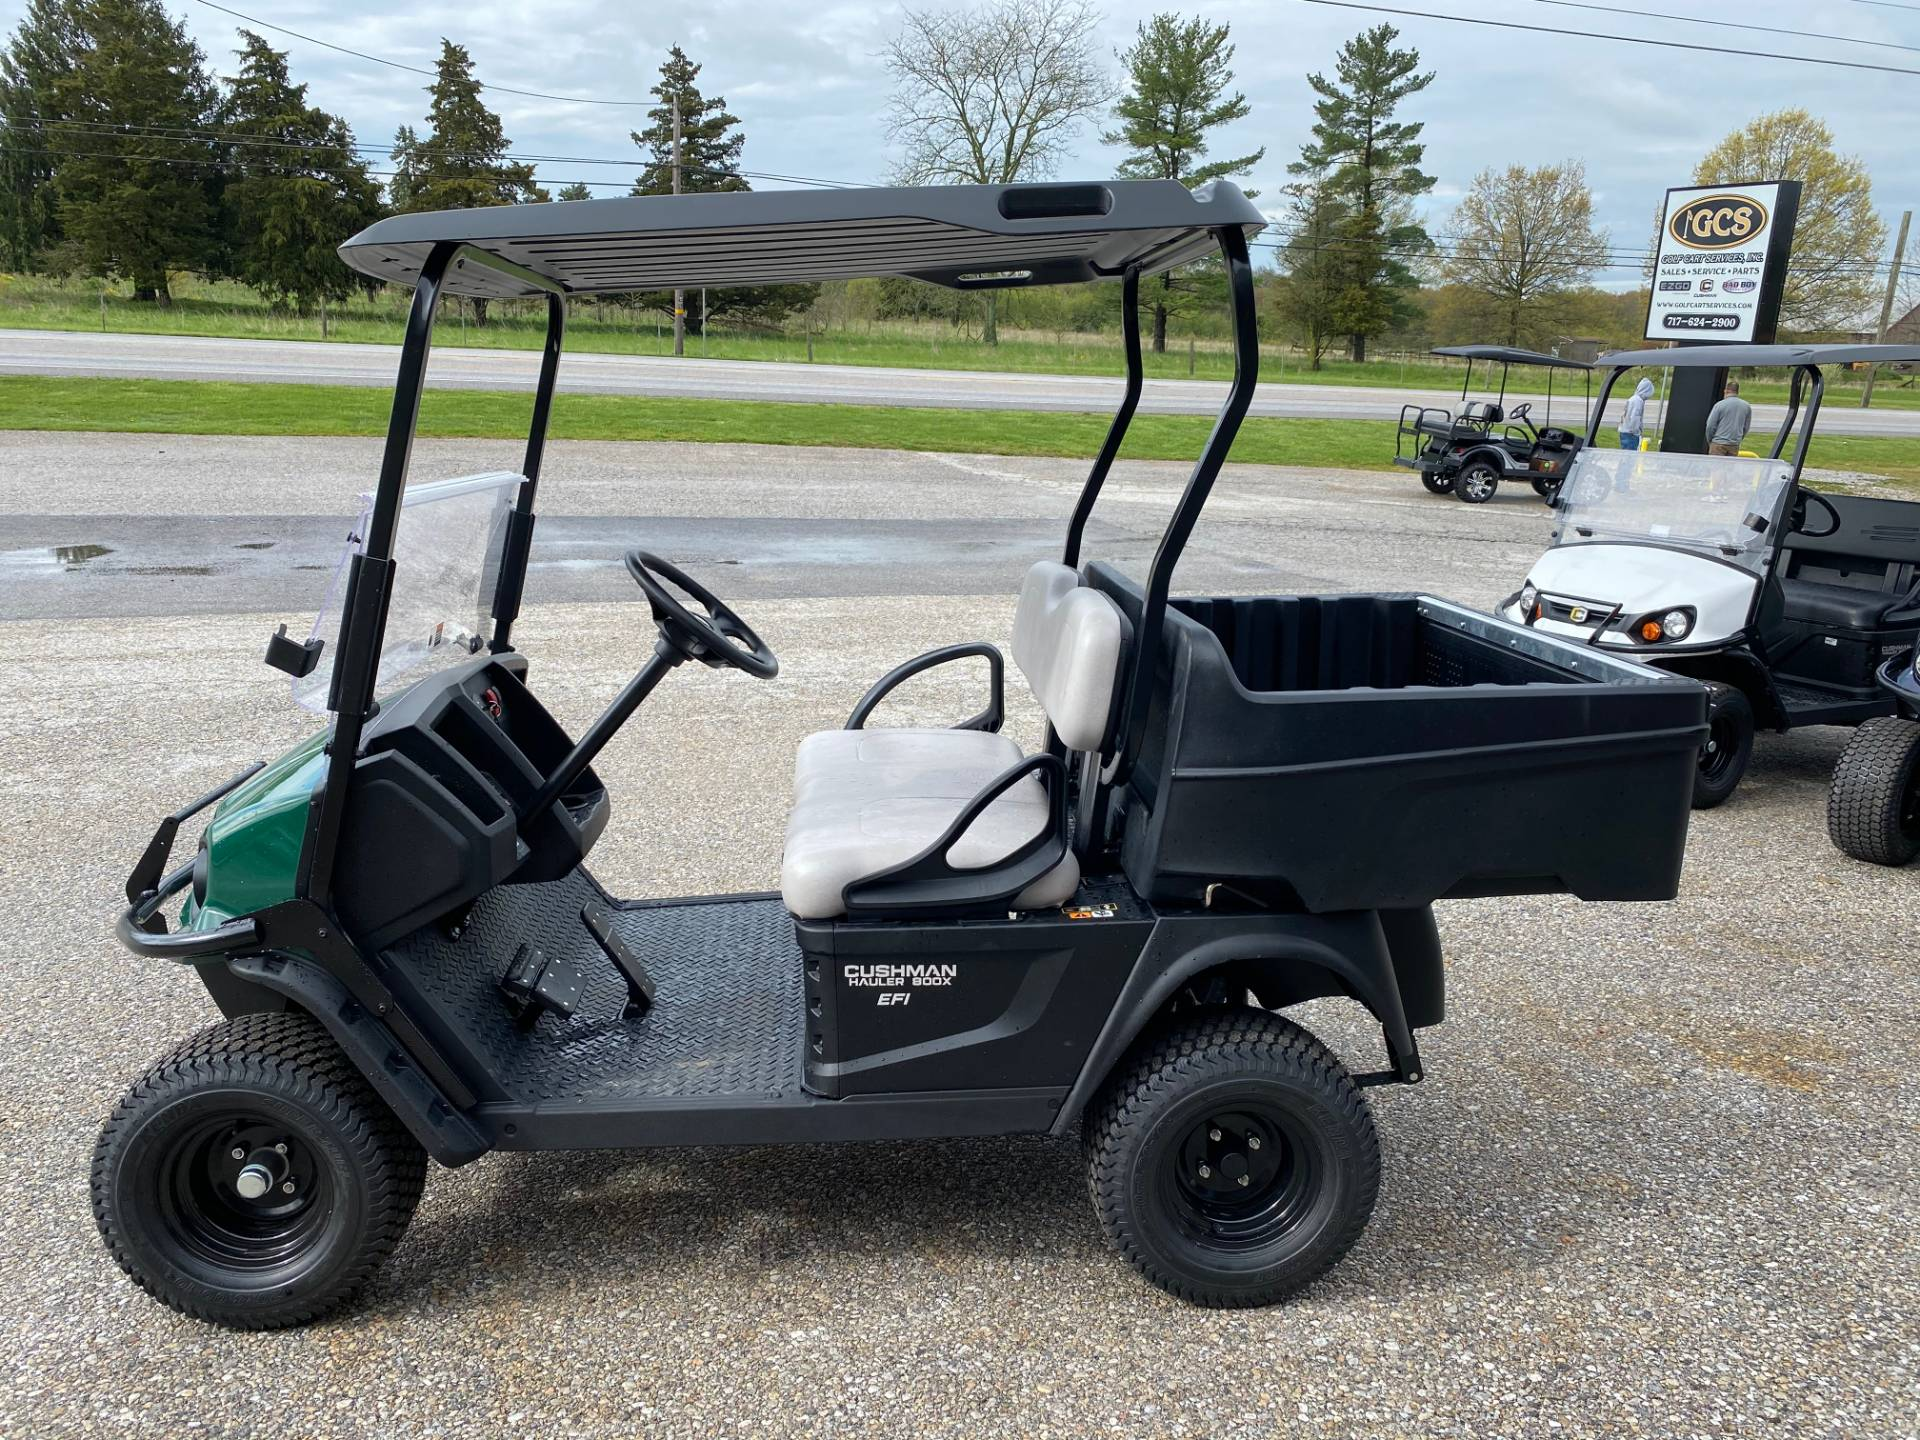 2020 Cushman HAULER 800X EFI in New Oxford, Pennsylvania - Photo 2